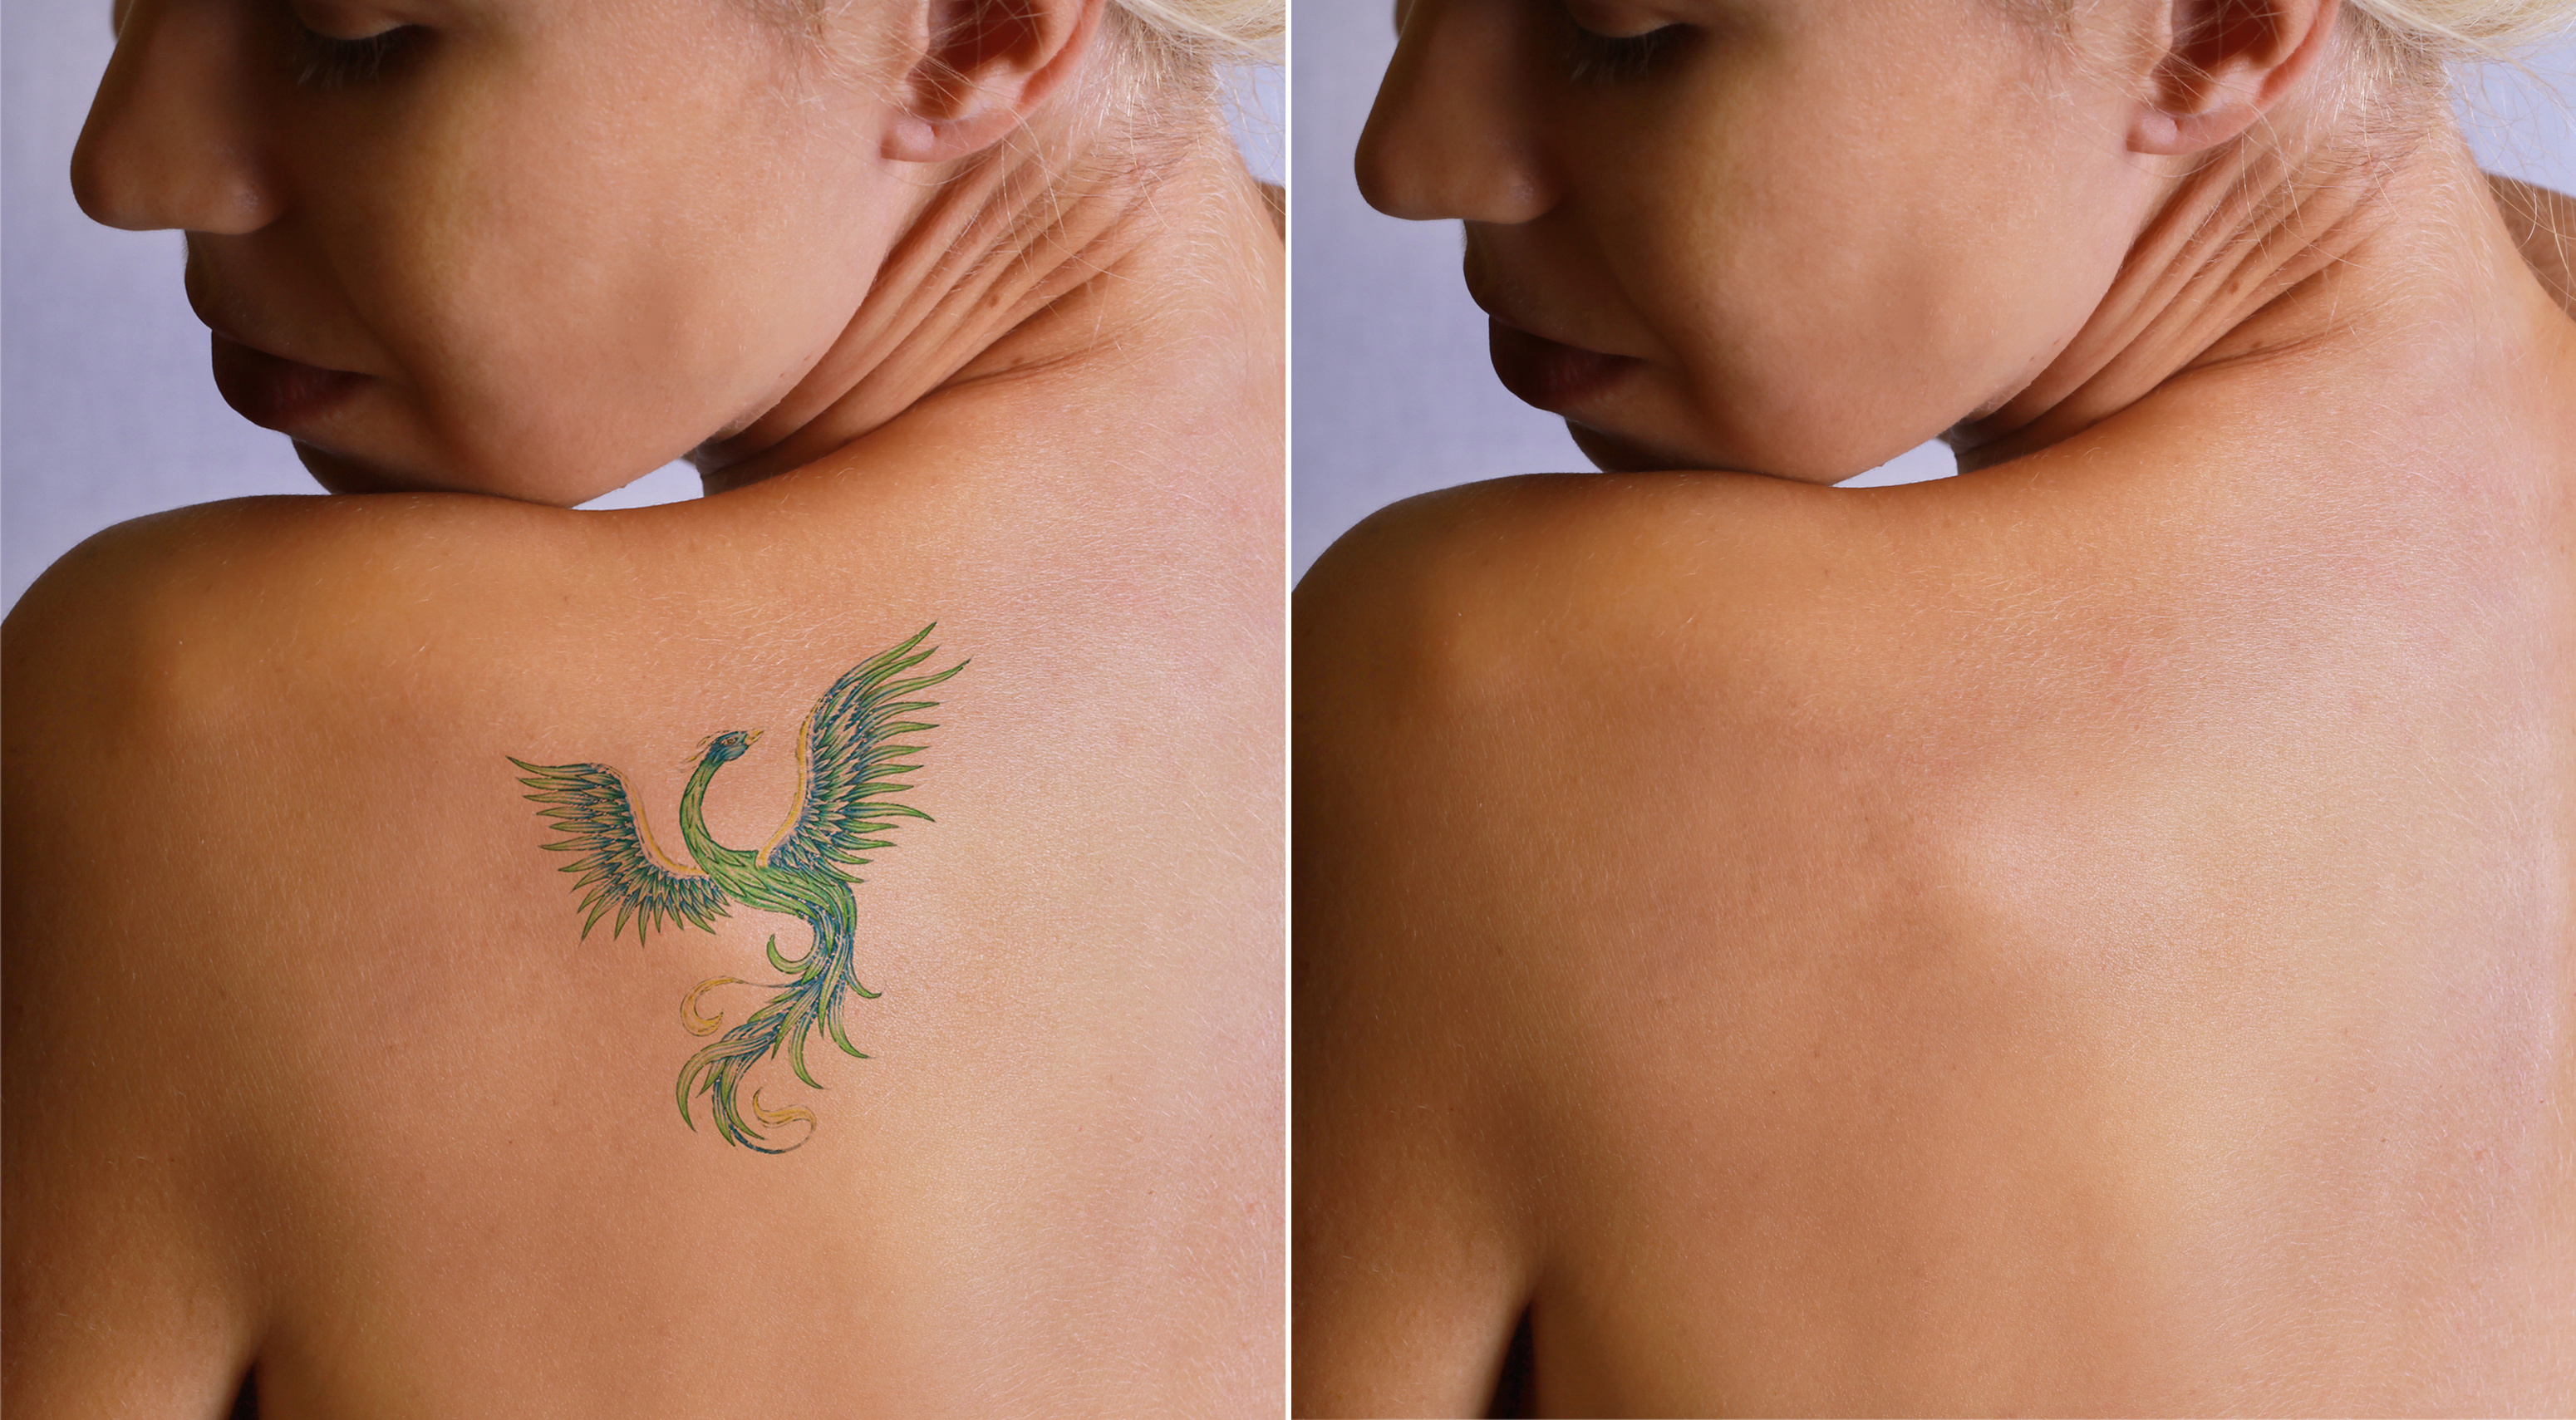 Laser tattoo removal befor and after. Beautiful young woman with tattoo on her back